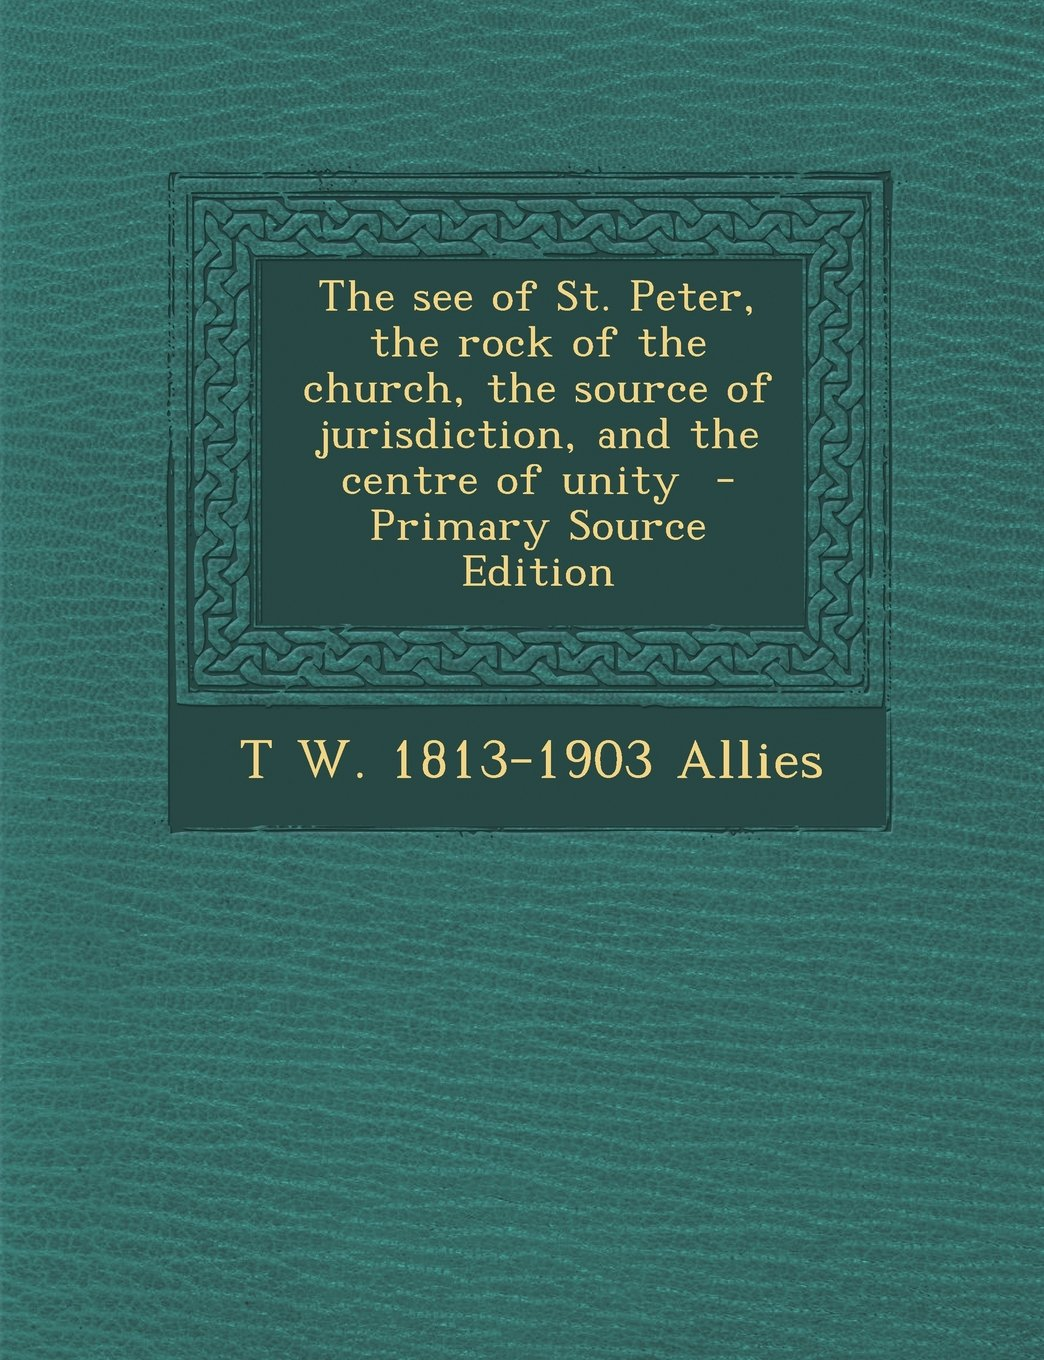 The See of St. Peter, the Rock of the Church, the Source of Jurisdiction, and the Centre of Unity - Primary Source Edition PDF